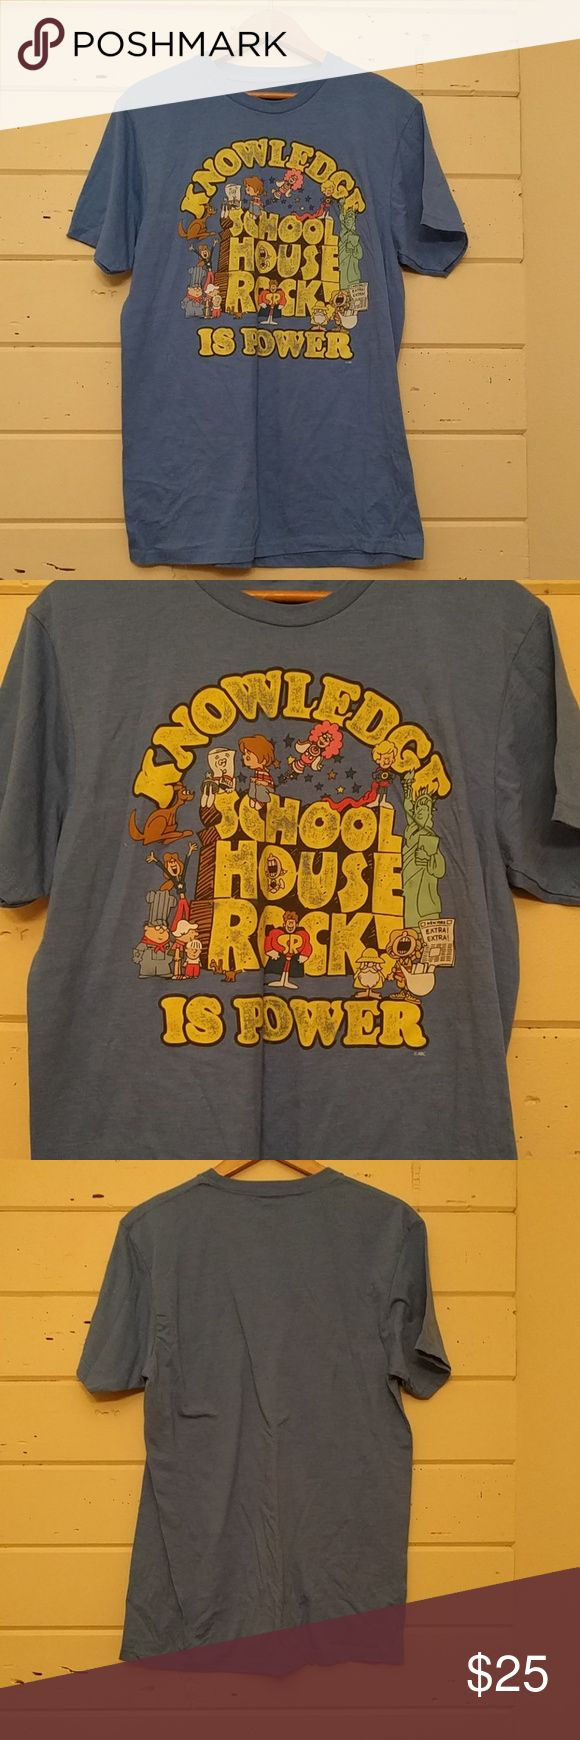 Vintage soft school house rock blue tee shirt Excellent condition, soft thinner material. Knowledge is power Tops Tees - Short Sleeve